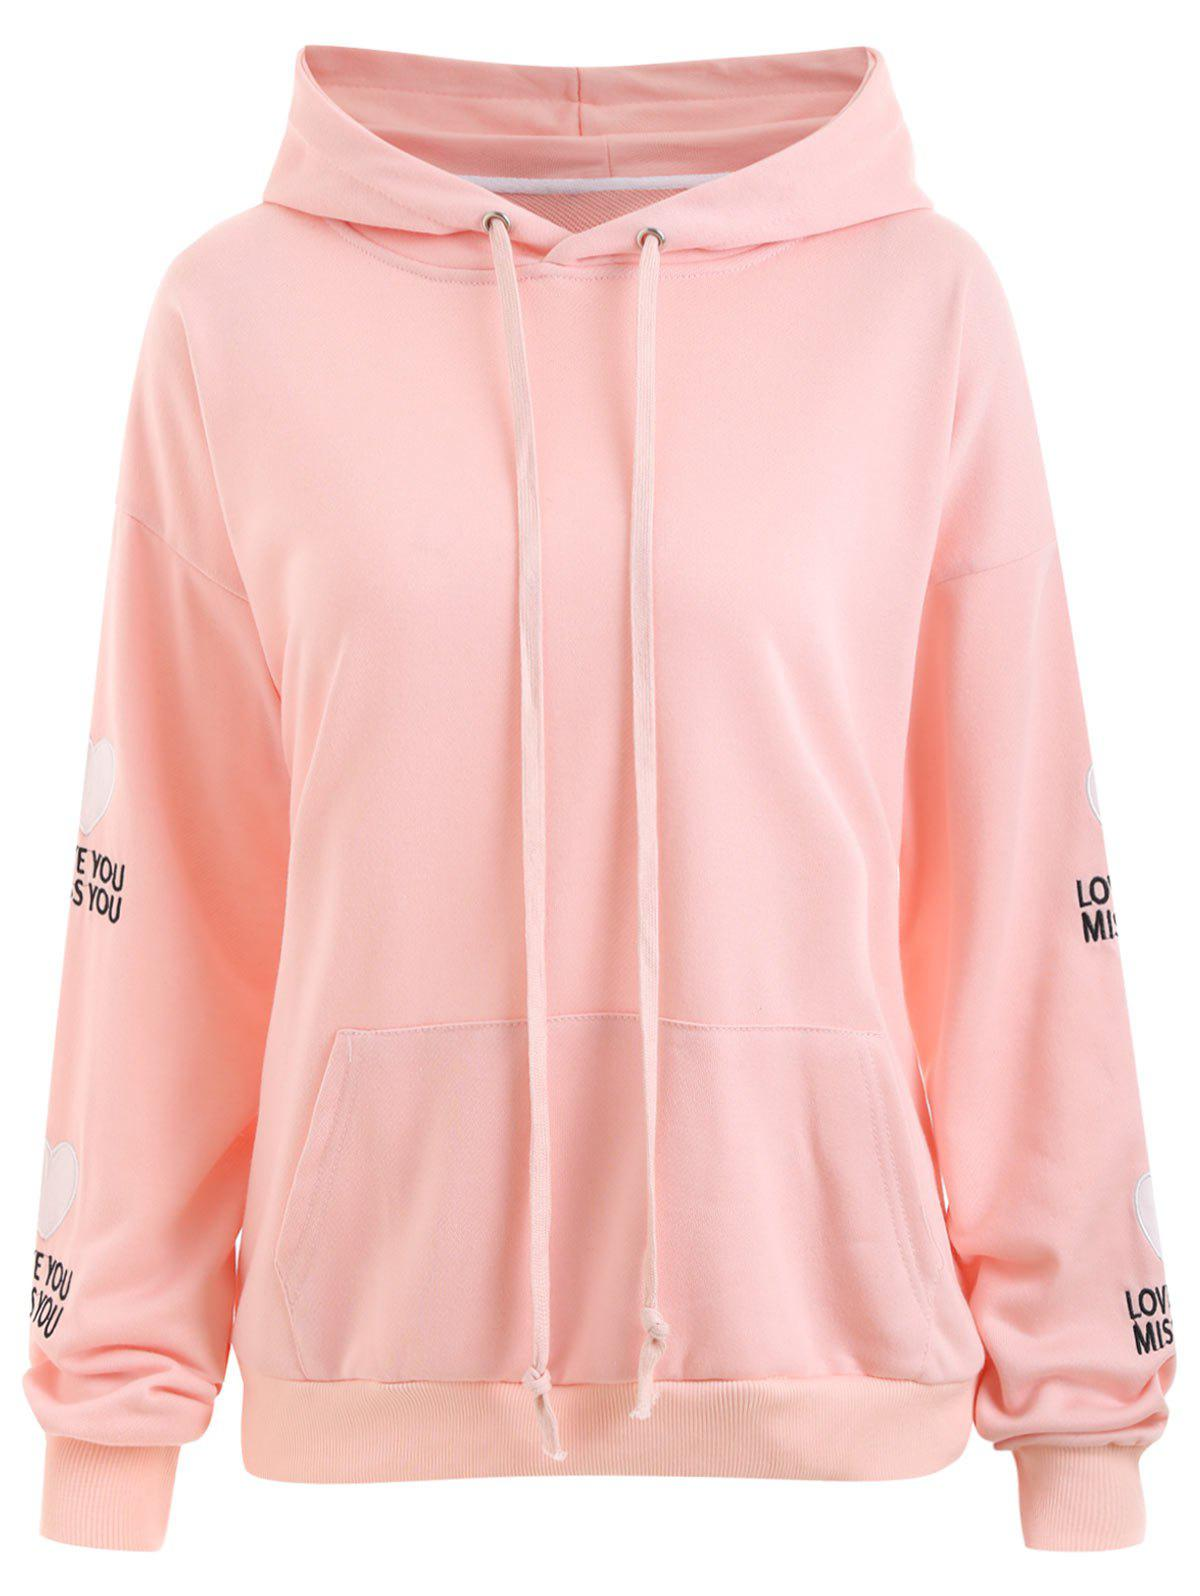 Plus Size Heart Patches Sleeve  Love You Kangaroo HoodieWOMEN<br><br>Size: 2XL; Color: PINK; Material: Cotton Blend,Polyester; Shirt Length: Regular; Sleeve Length: Full; Style: Fashion; Pattern Style: Heart,Letter; Embellishment: Appliques; Season: Fall,Winter; Weight: 0.6300kg; Package Contents: 1 x Hoodie;